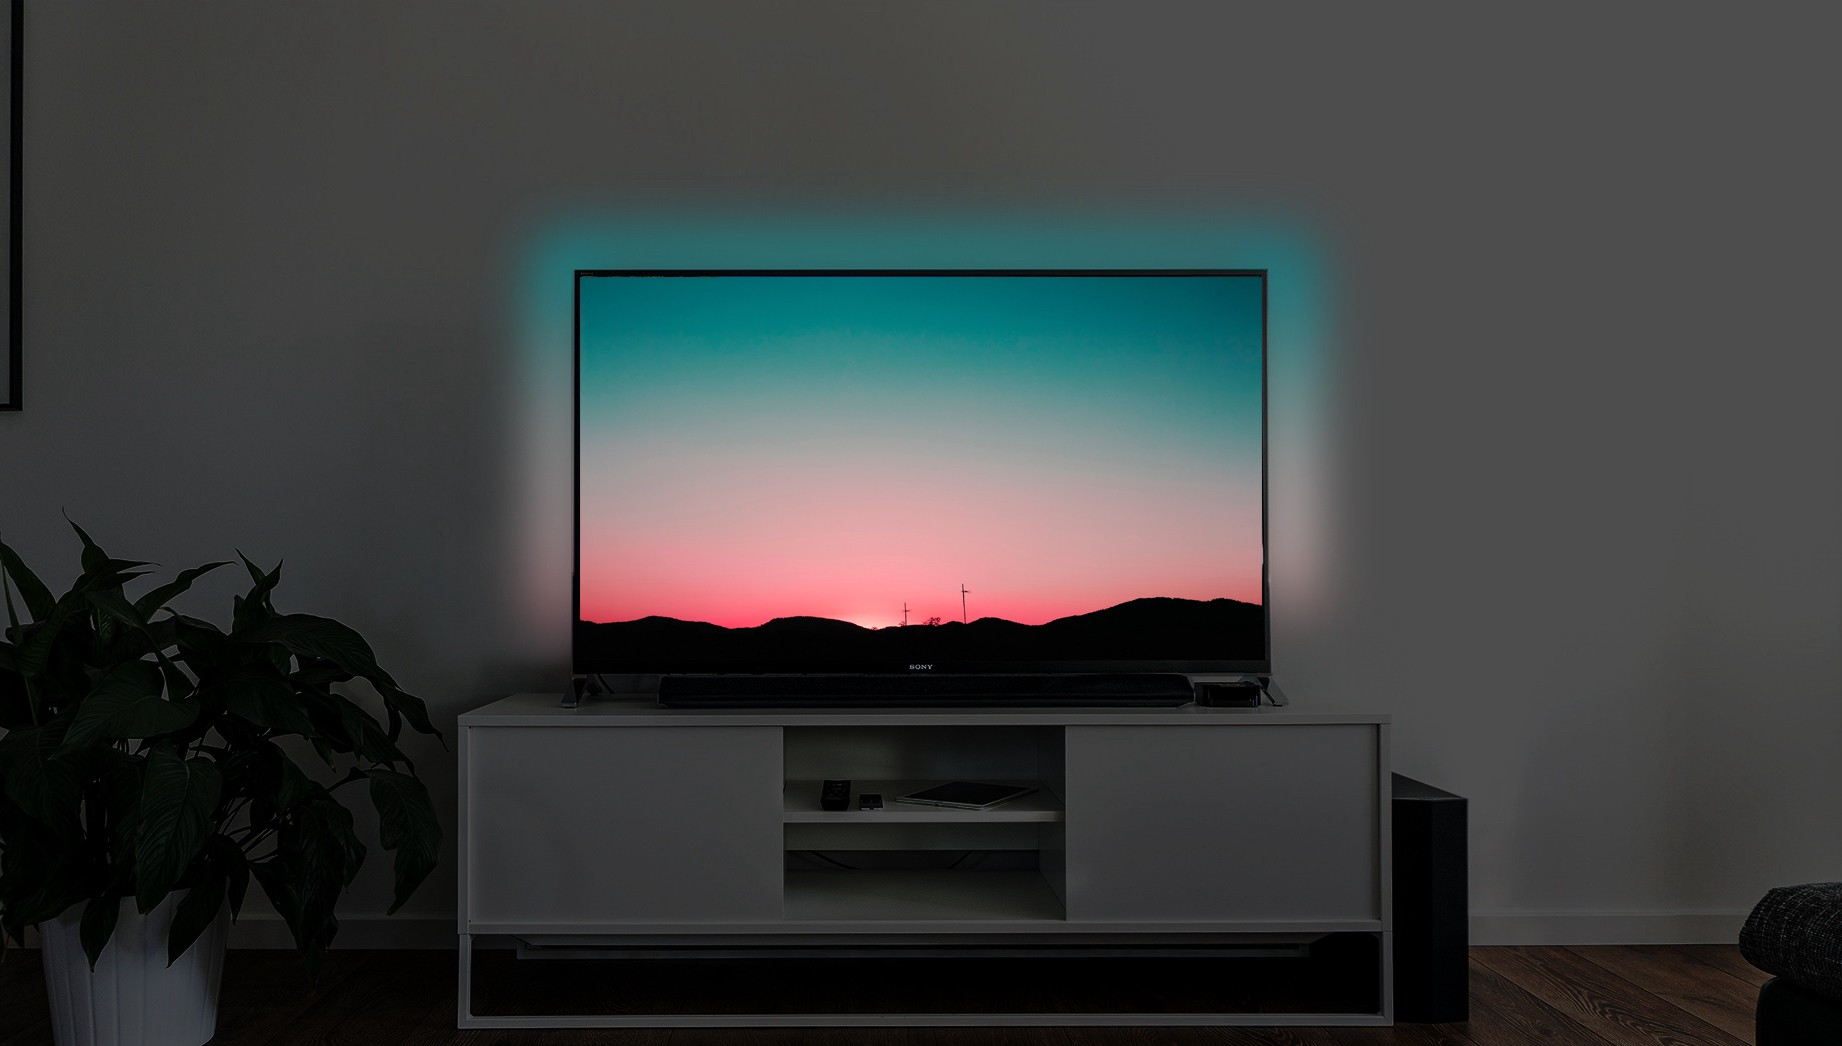 Philips Hue Led Strip Tv.The Best Tv Experience Diy Philips Ambilight Hacker Noon